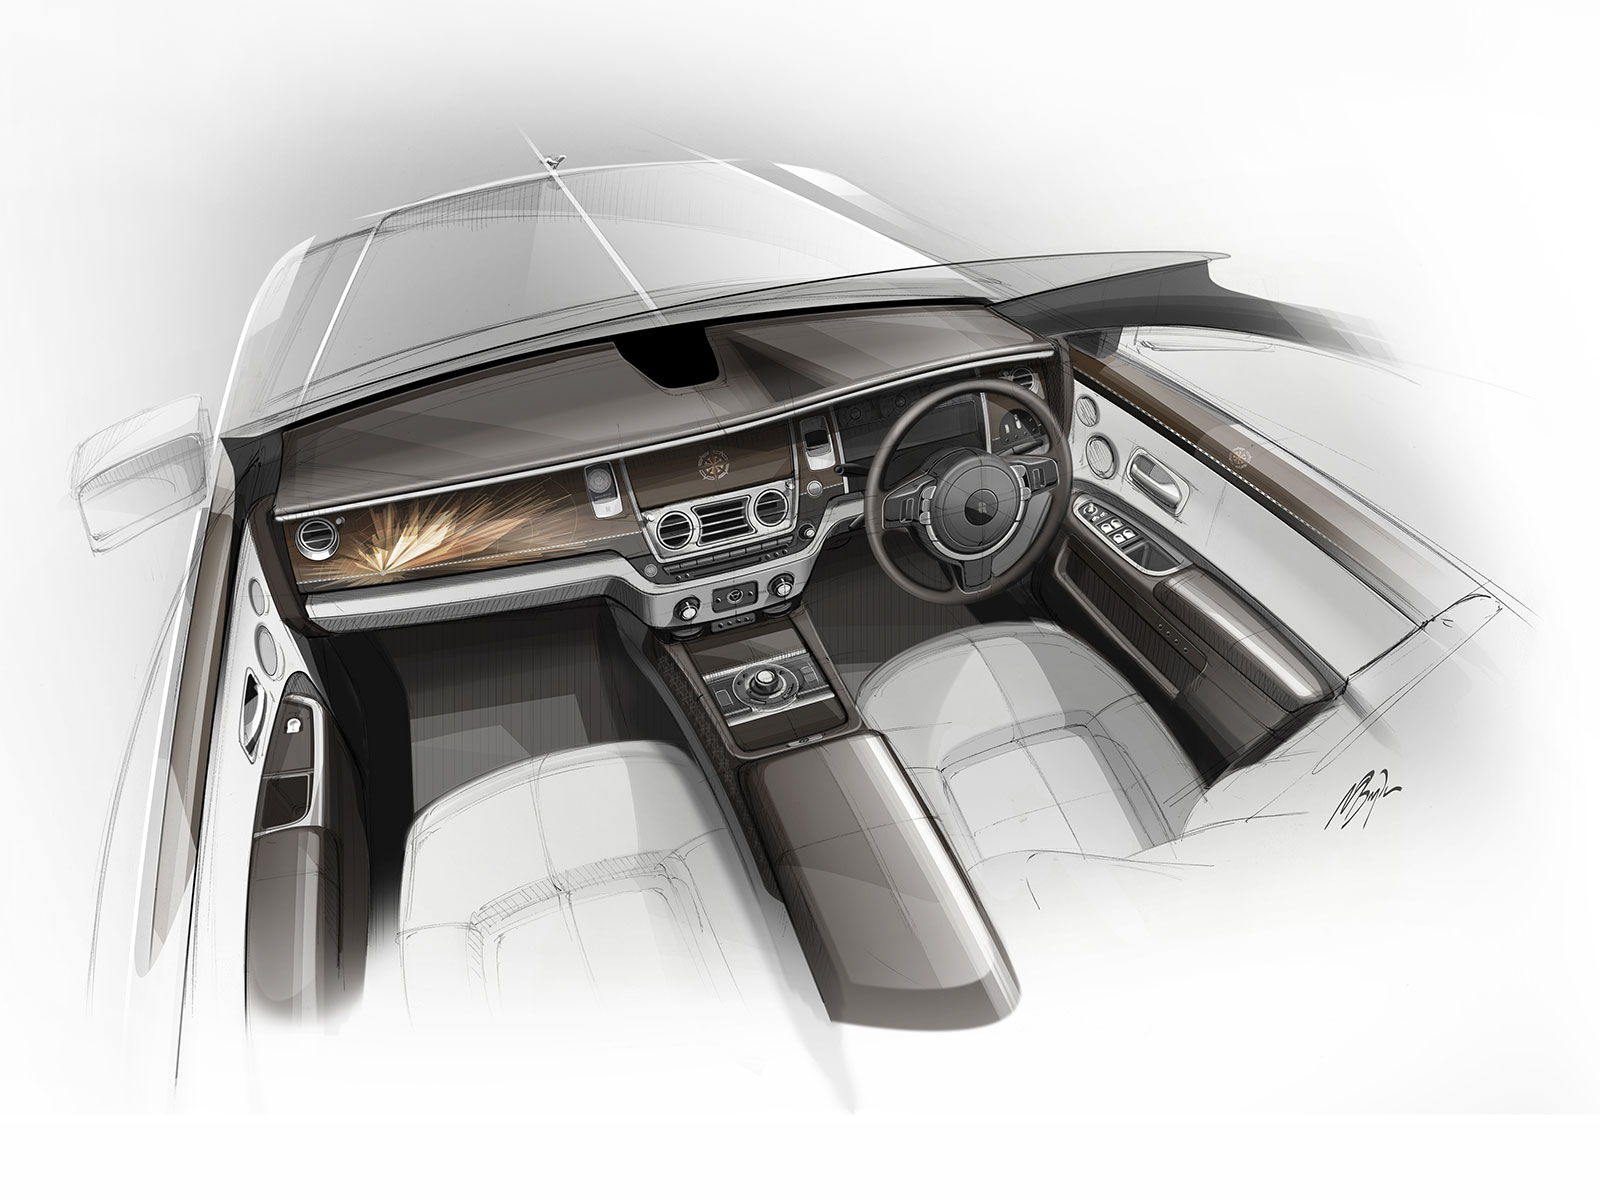 Rolls royce bespoke collection interior design sketch - Car interior design ...